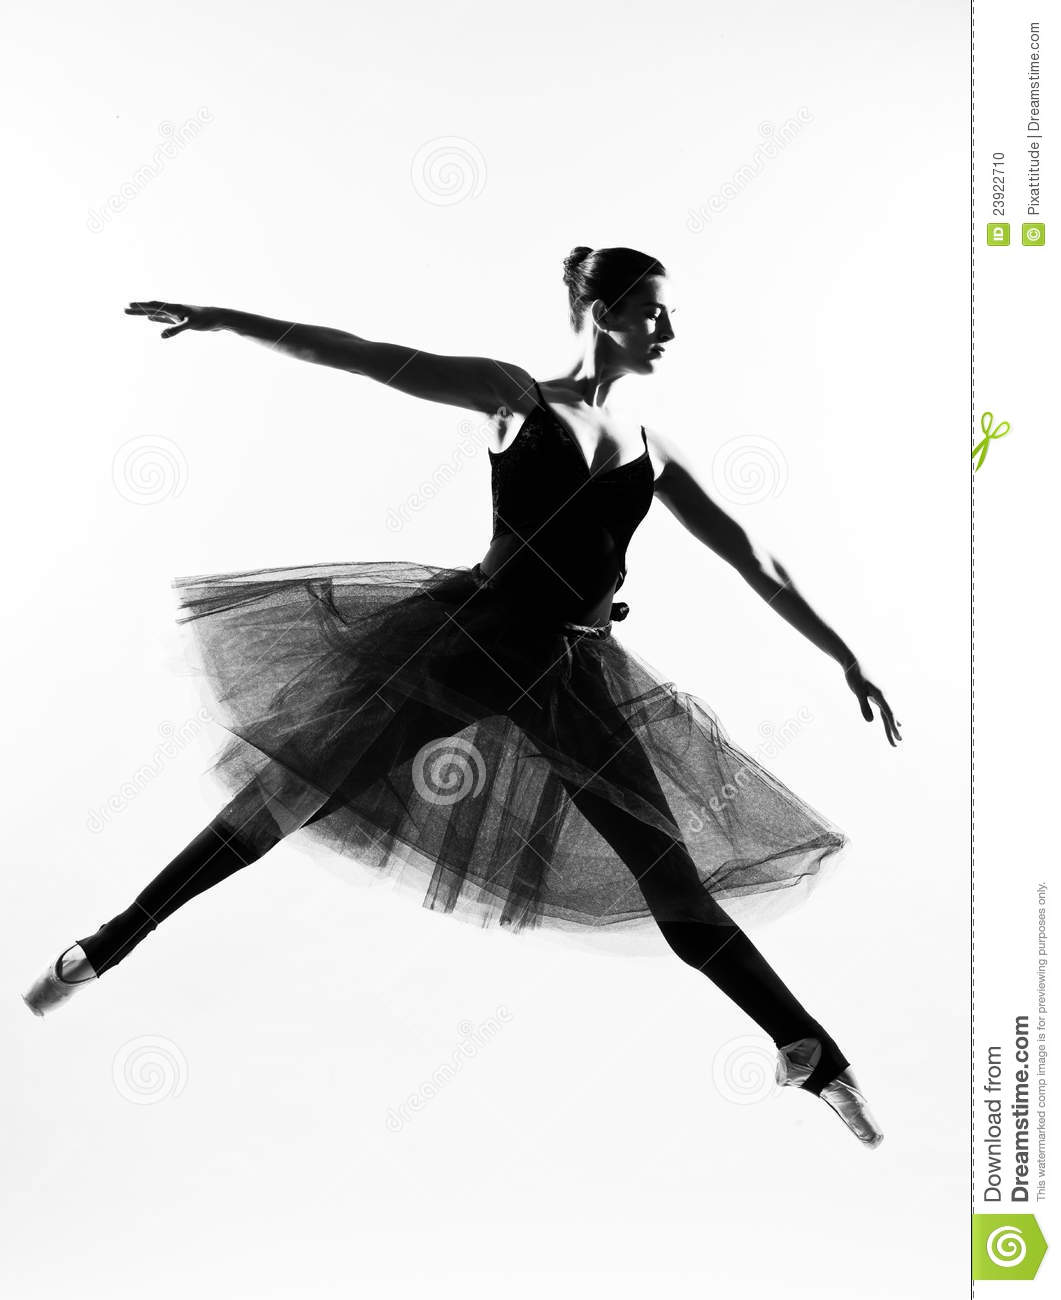 blitsy blog leap ballet dancer leap silhouette stock photo 1145